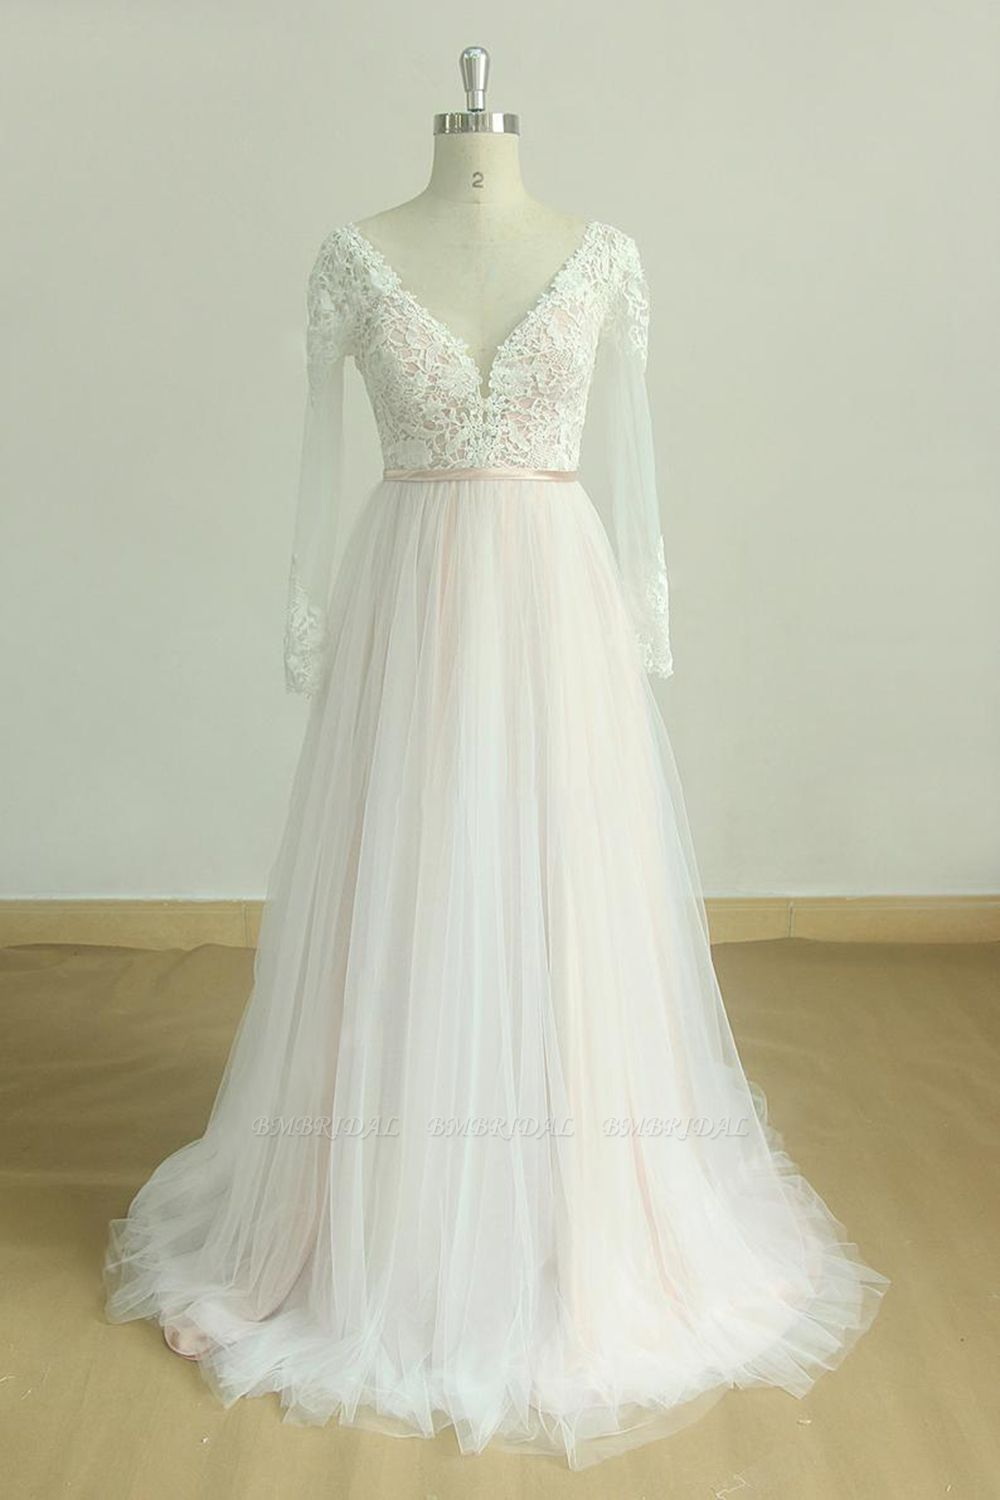 Stylish Longsleeves V-neck Tulle Wedding Dress White Appliques A-line Bridal Gowns On Sale